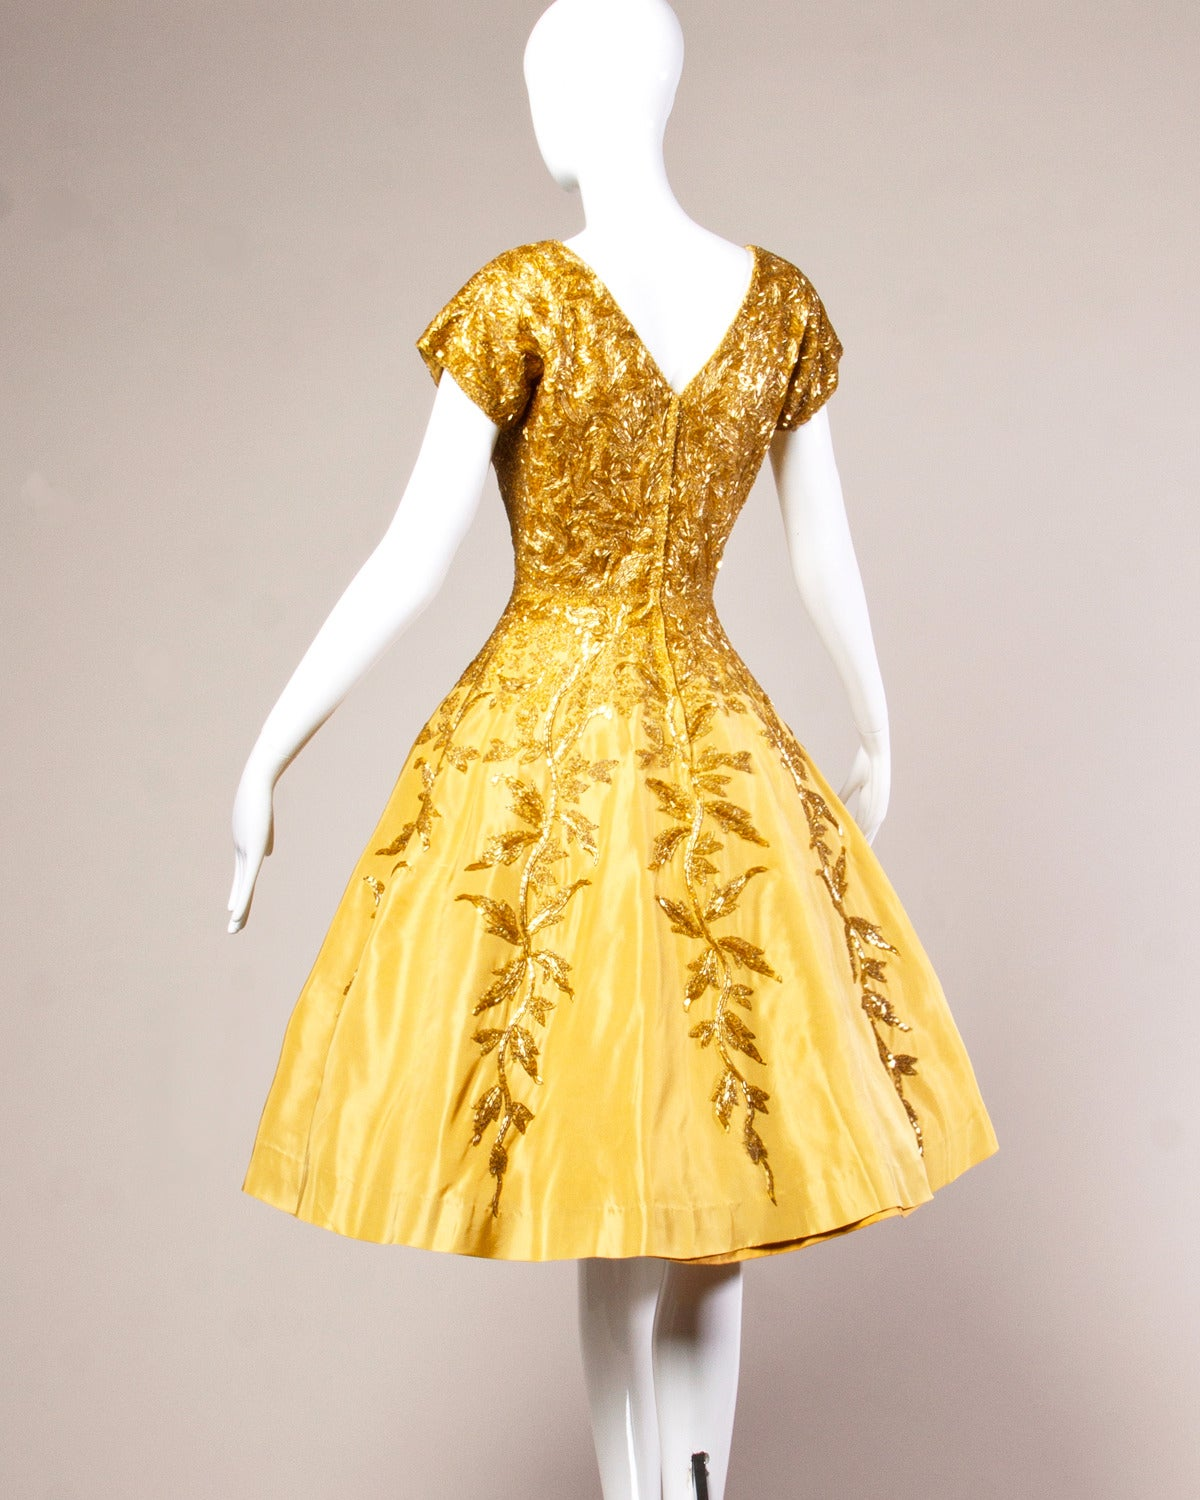 Women's Vintage 1950s 50s Gold Yellow Hand-Beaded Couture Silk Cocktail Dress For Sale